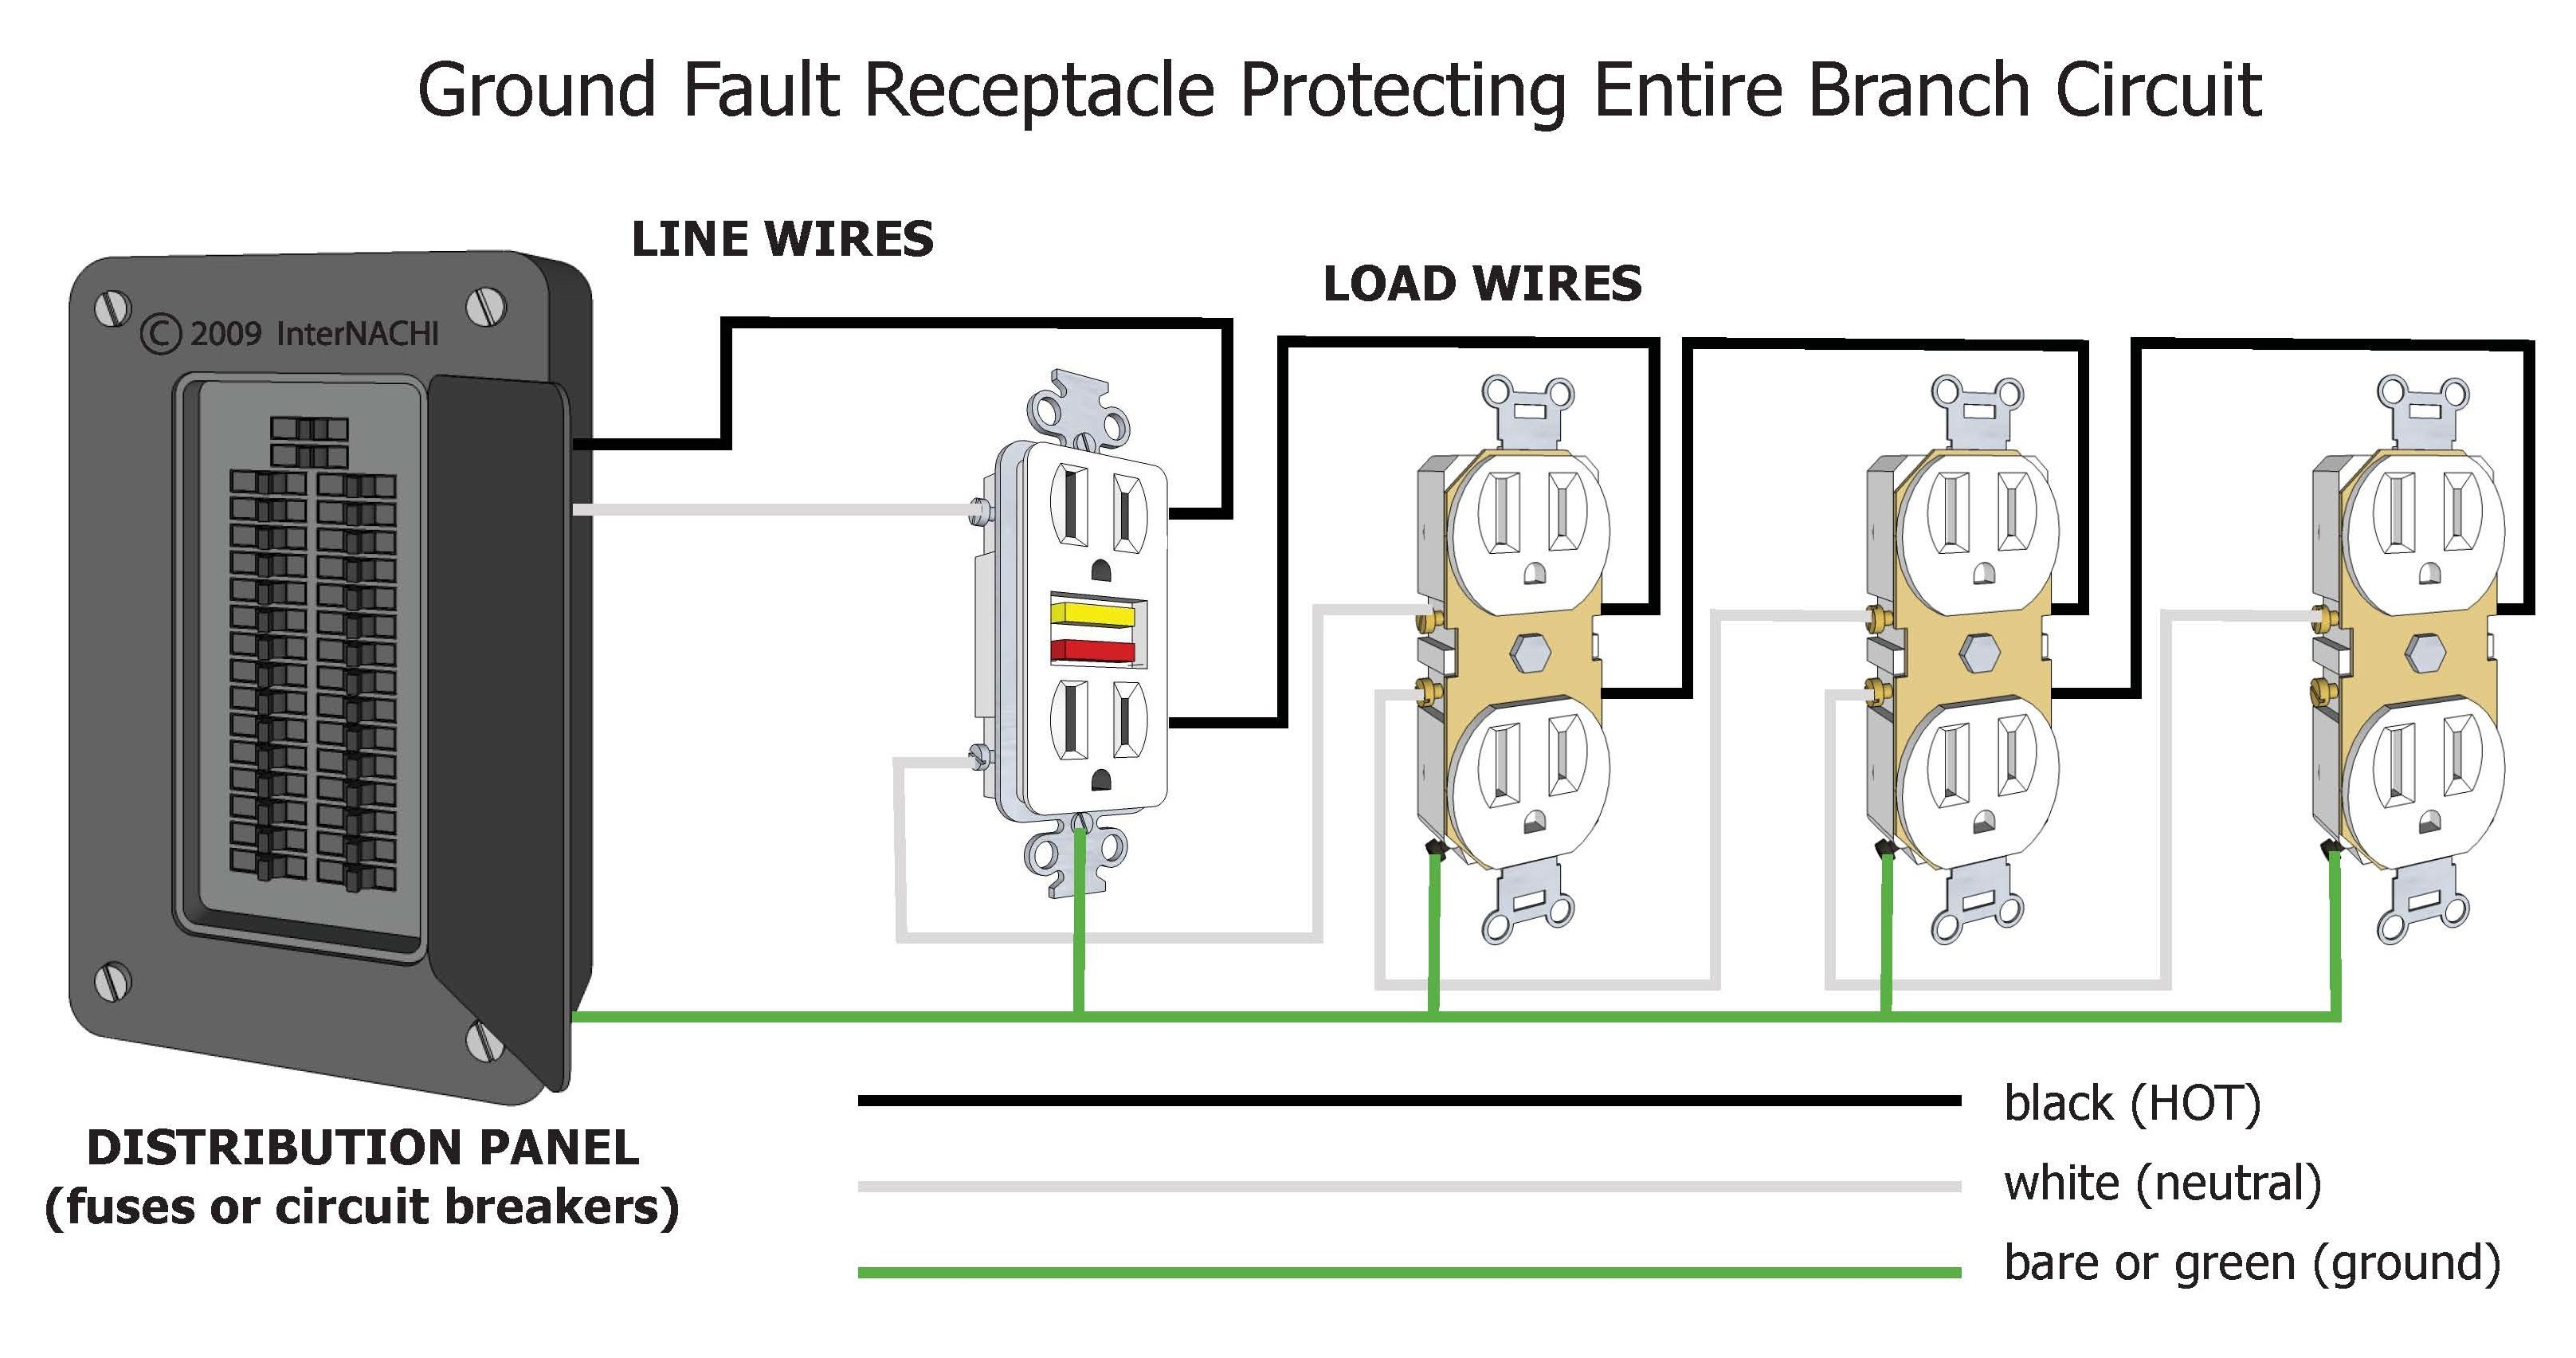 gfci branch circuit color gfci wiring diagram gfi wiring \u2022 free wiring diagrams life quotes co gfi circuit wiring diagram at mifinder.co